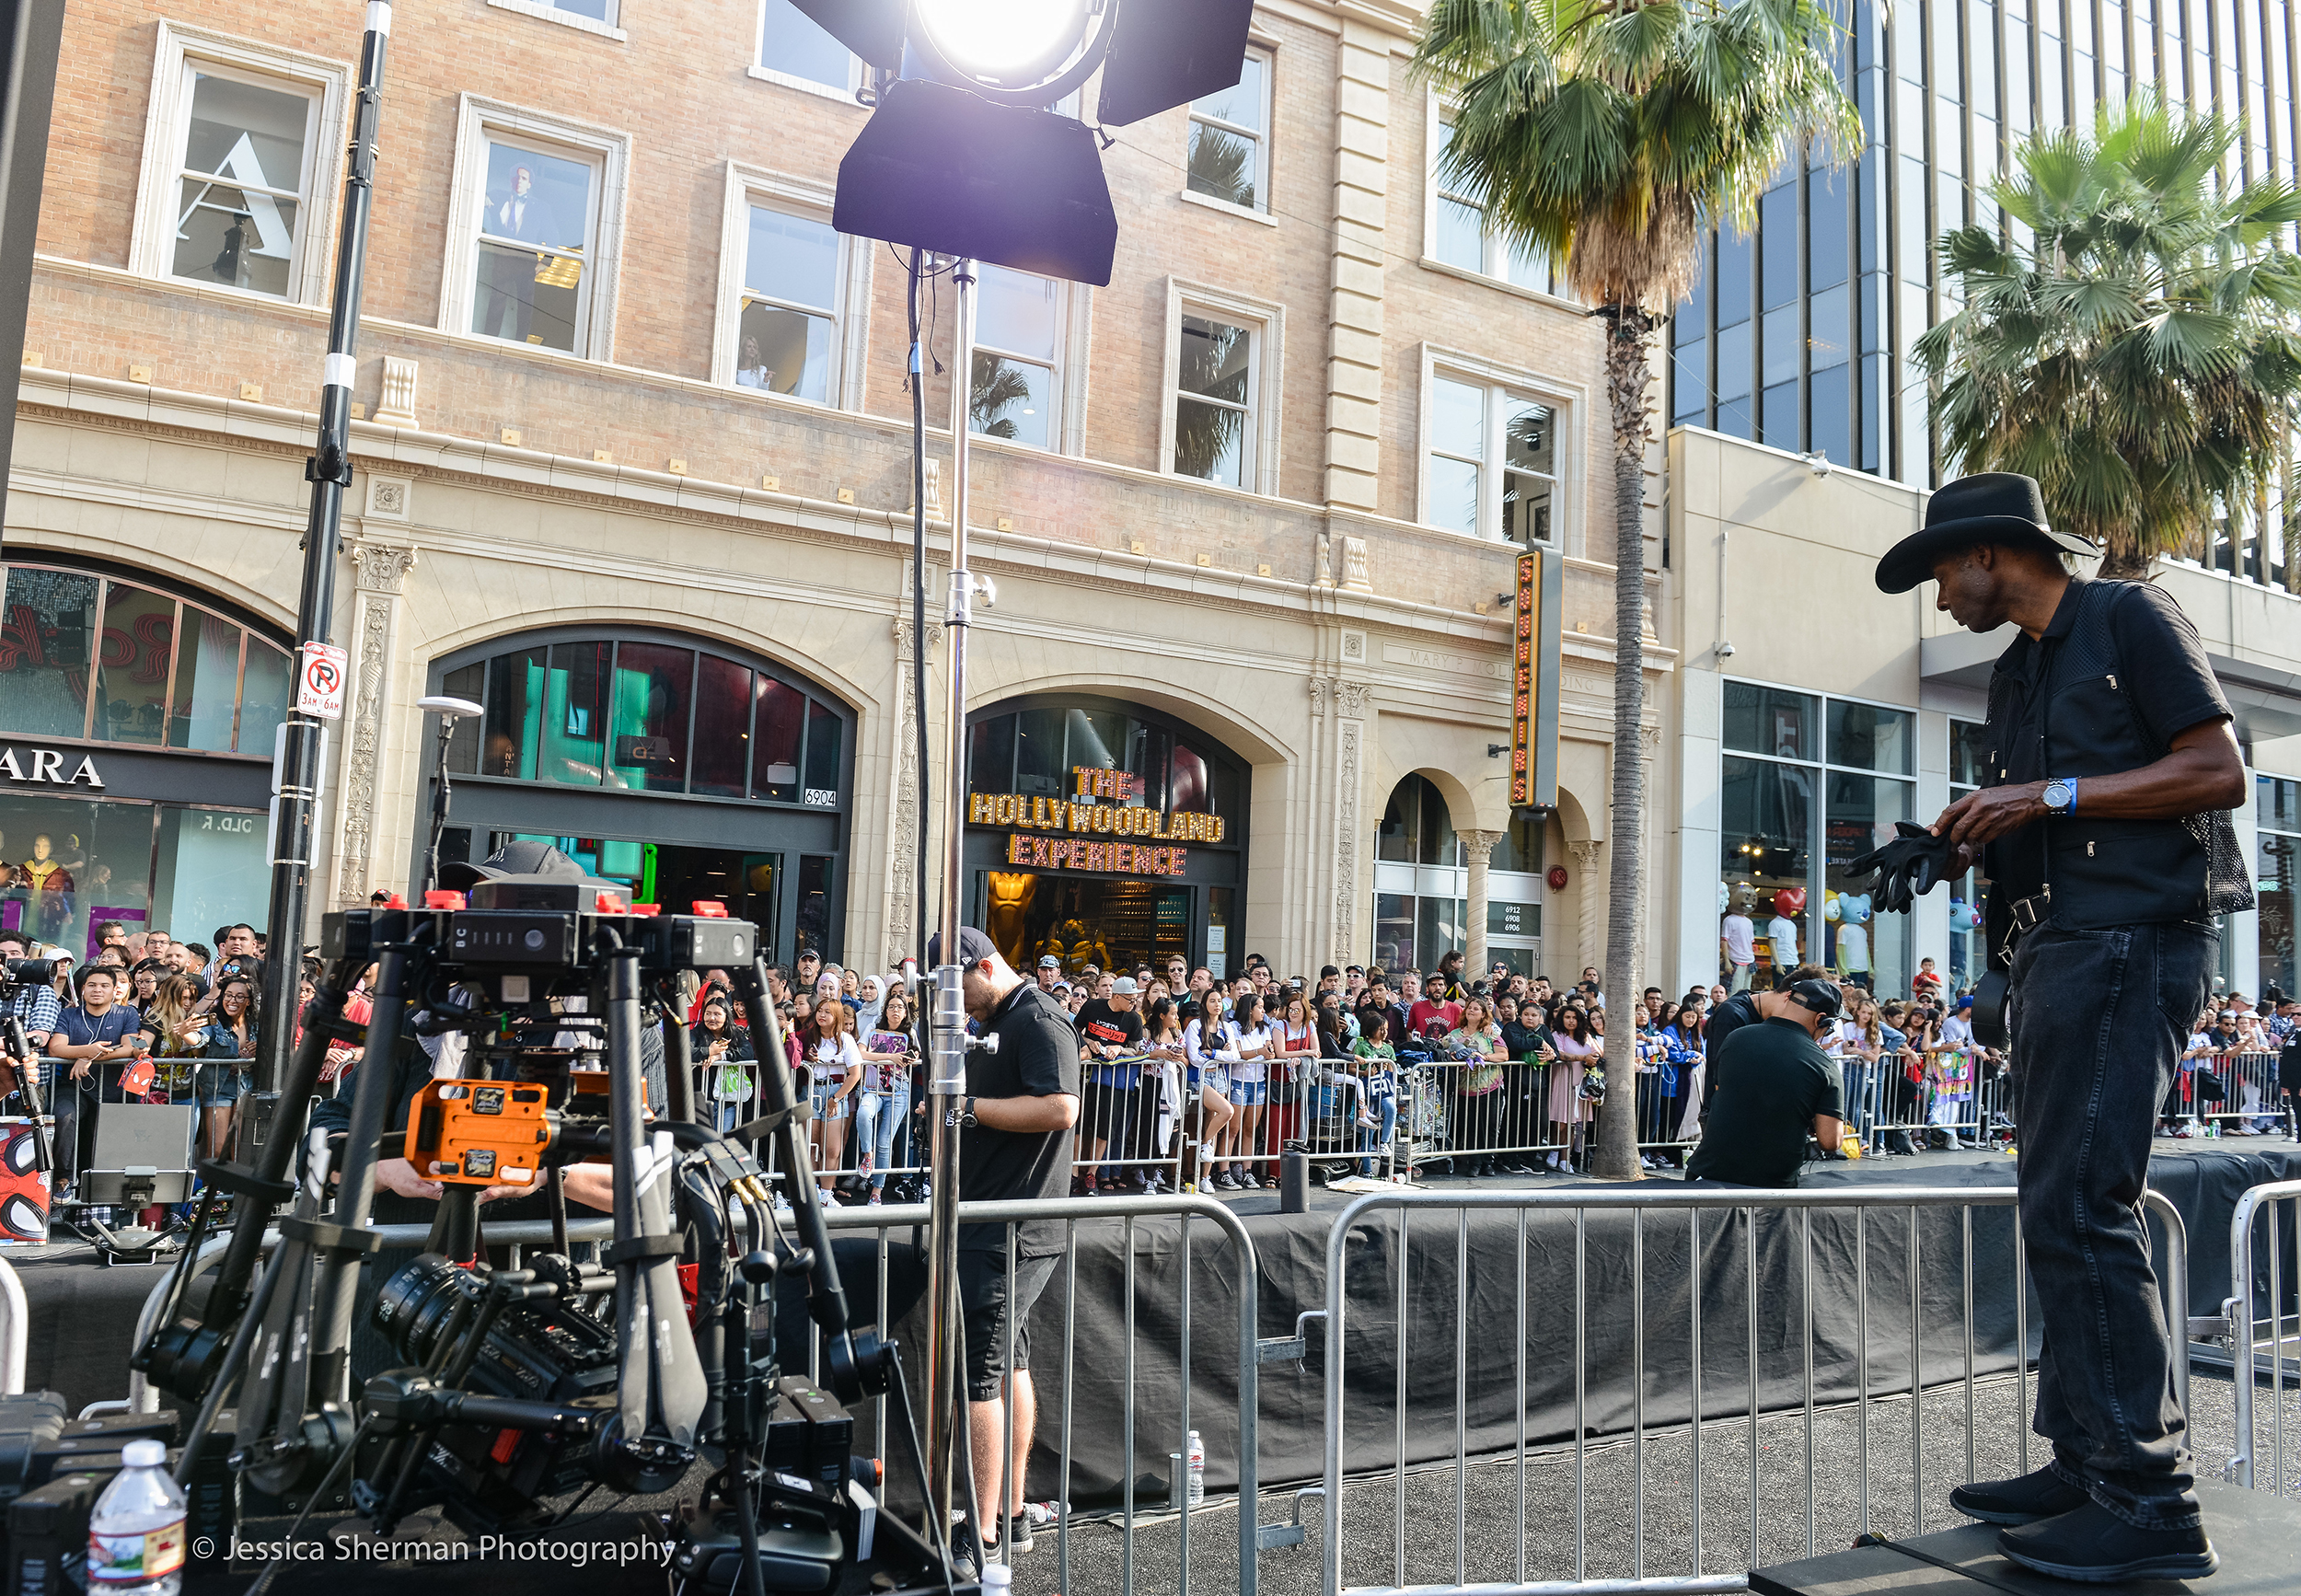 FFH-Premiere-Hollywood-Blvd2-Jessica-Sherman-6668-Site.jpg